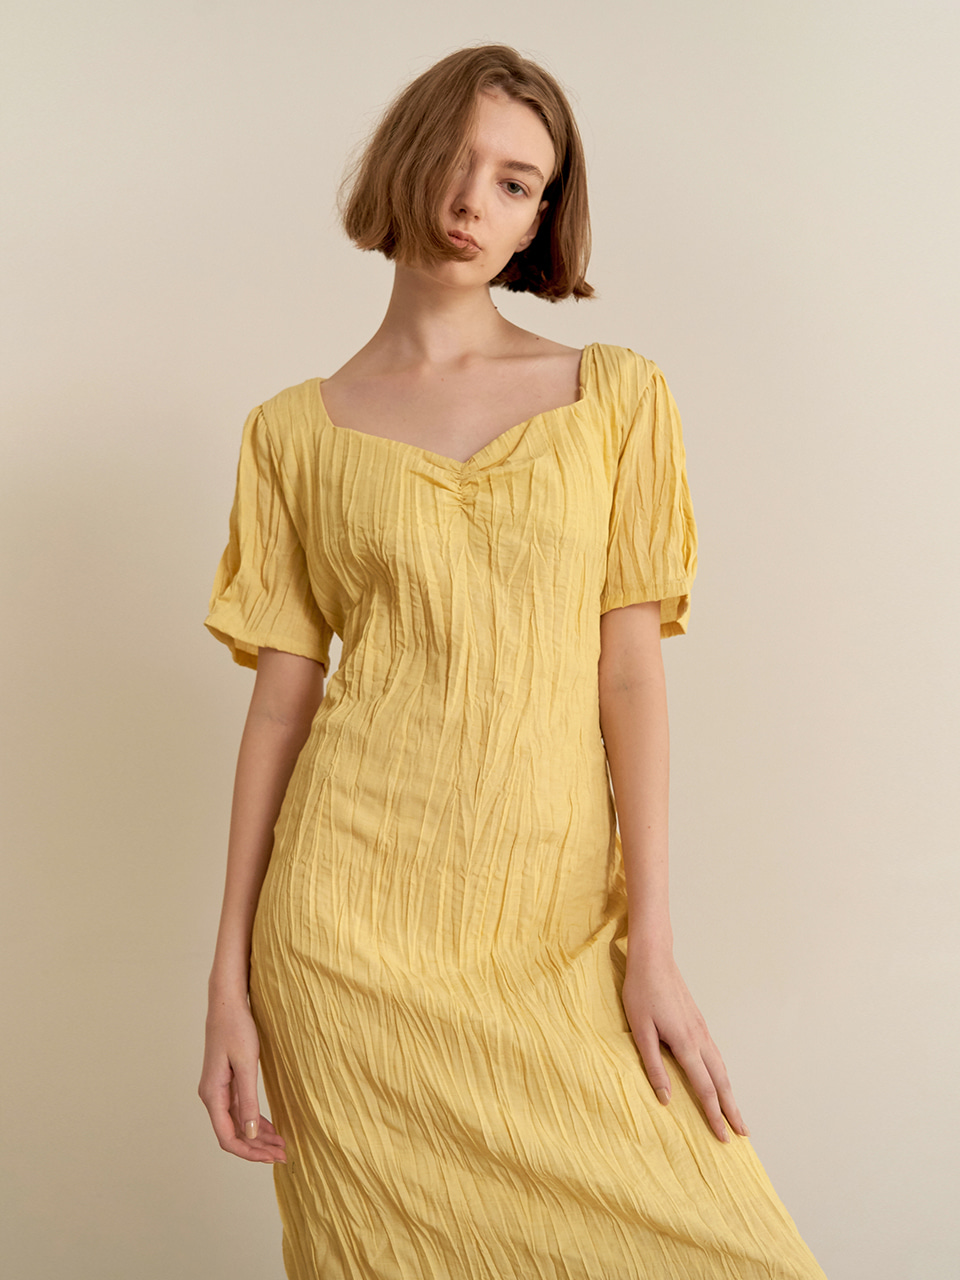 Halfmoon shirring dress - yellow [5/28예약배송]